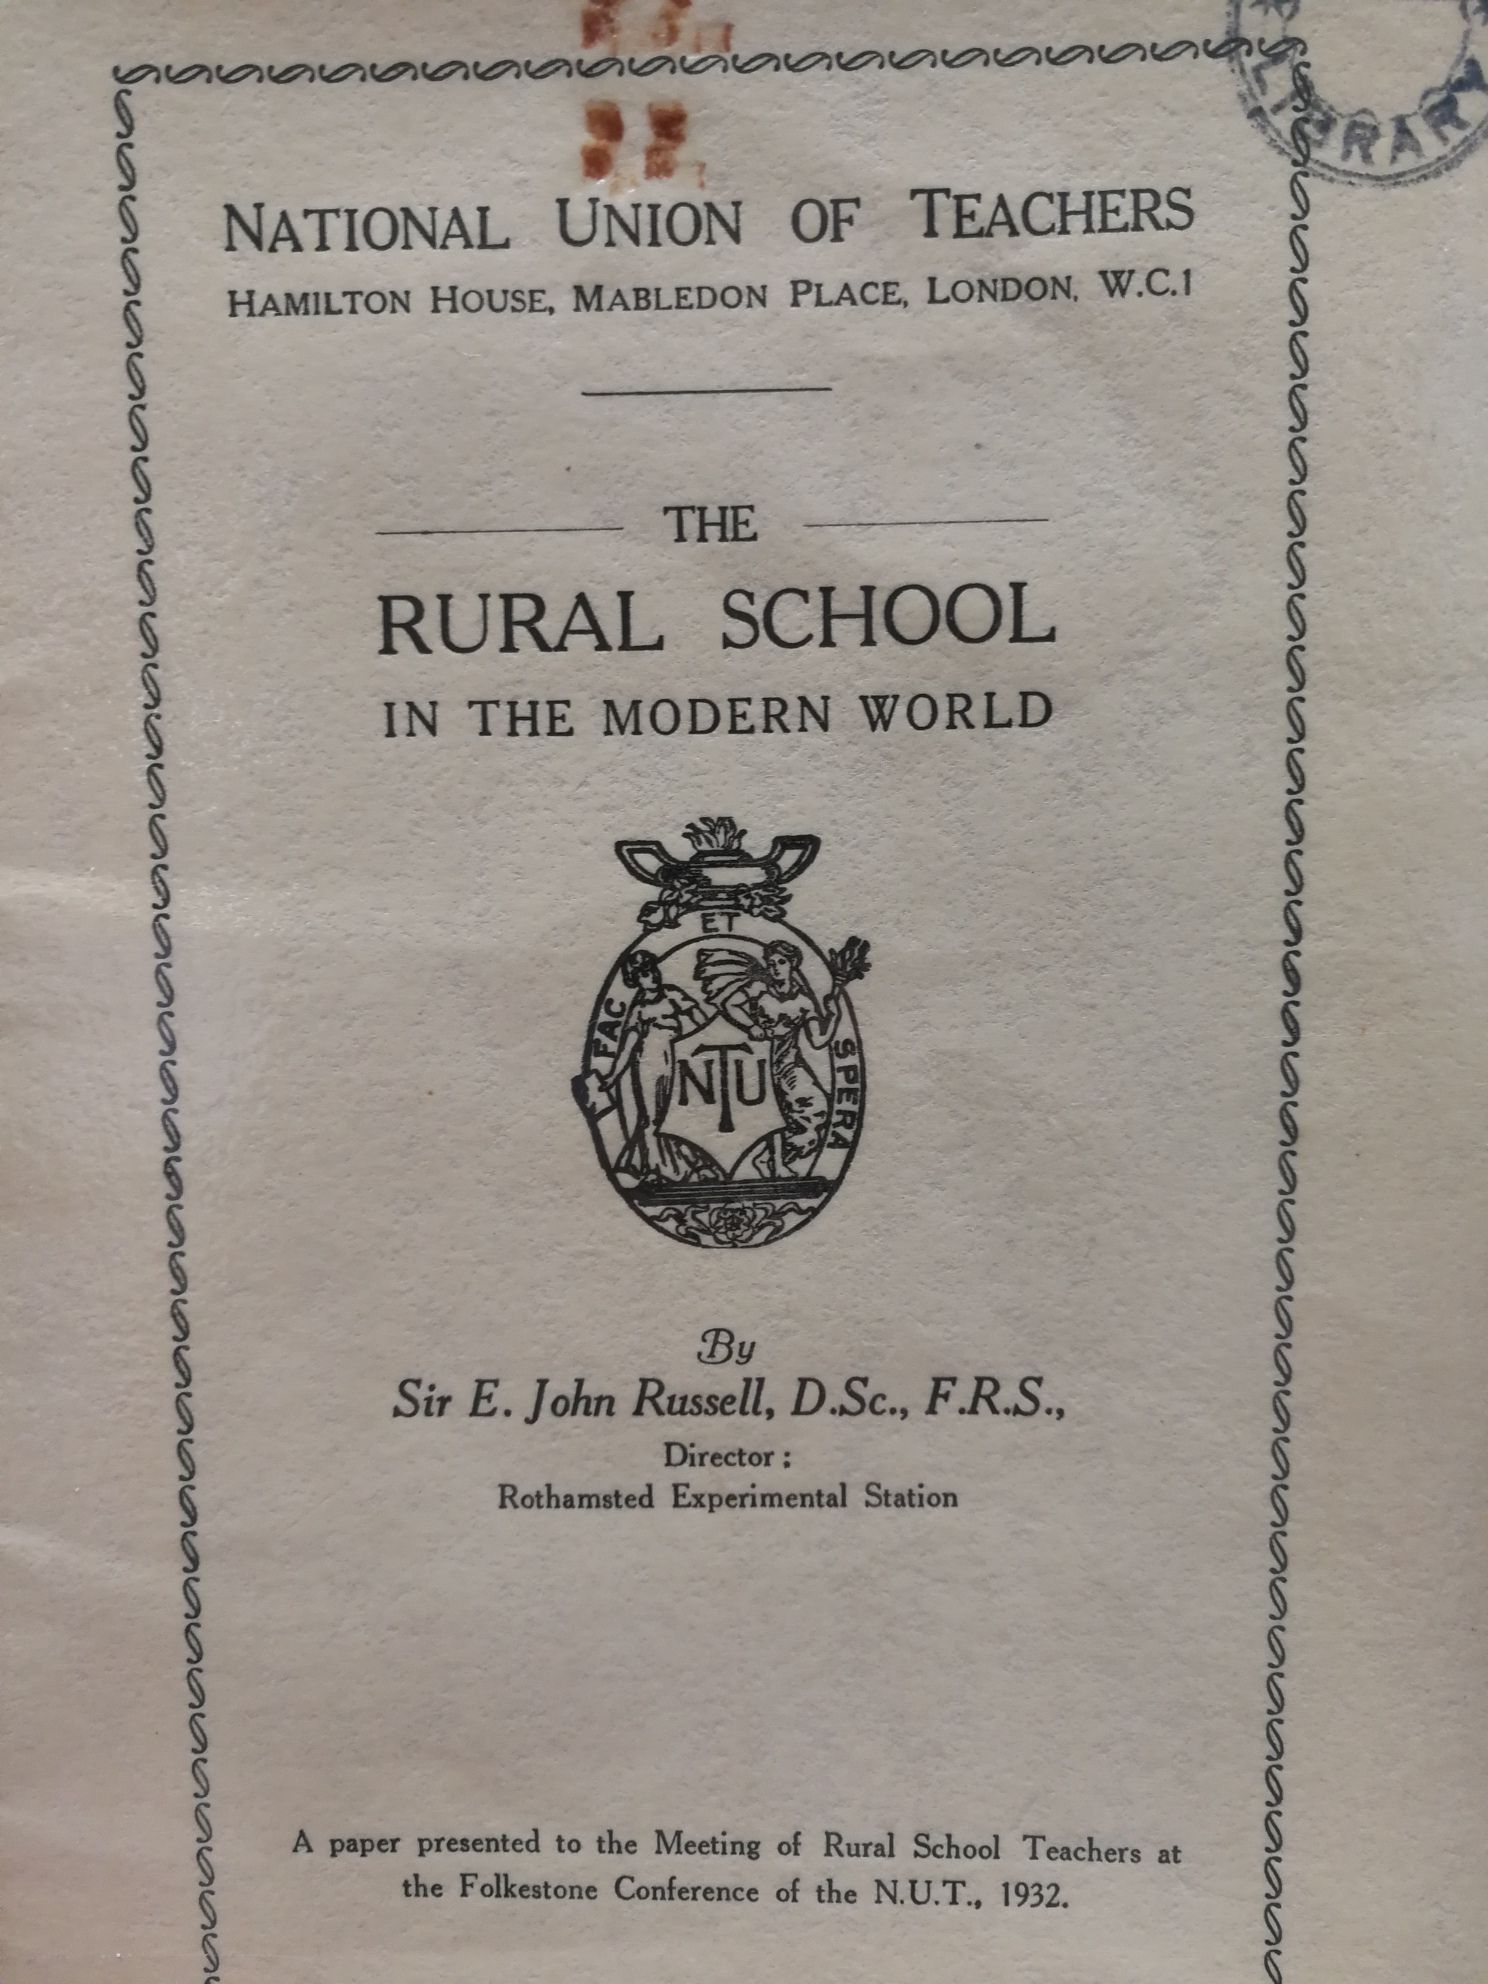 Image icon of a publication on rural schools